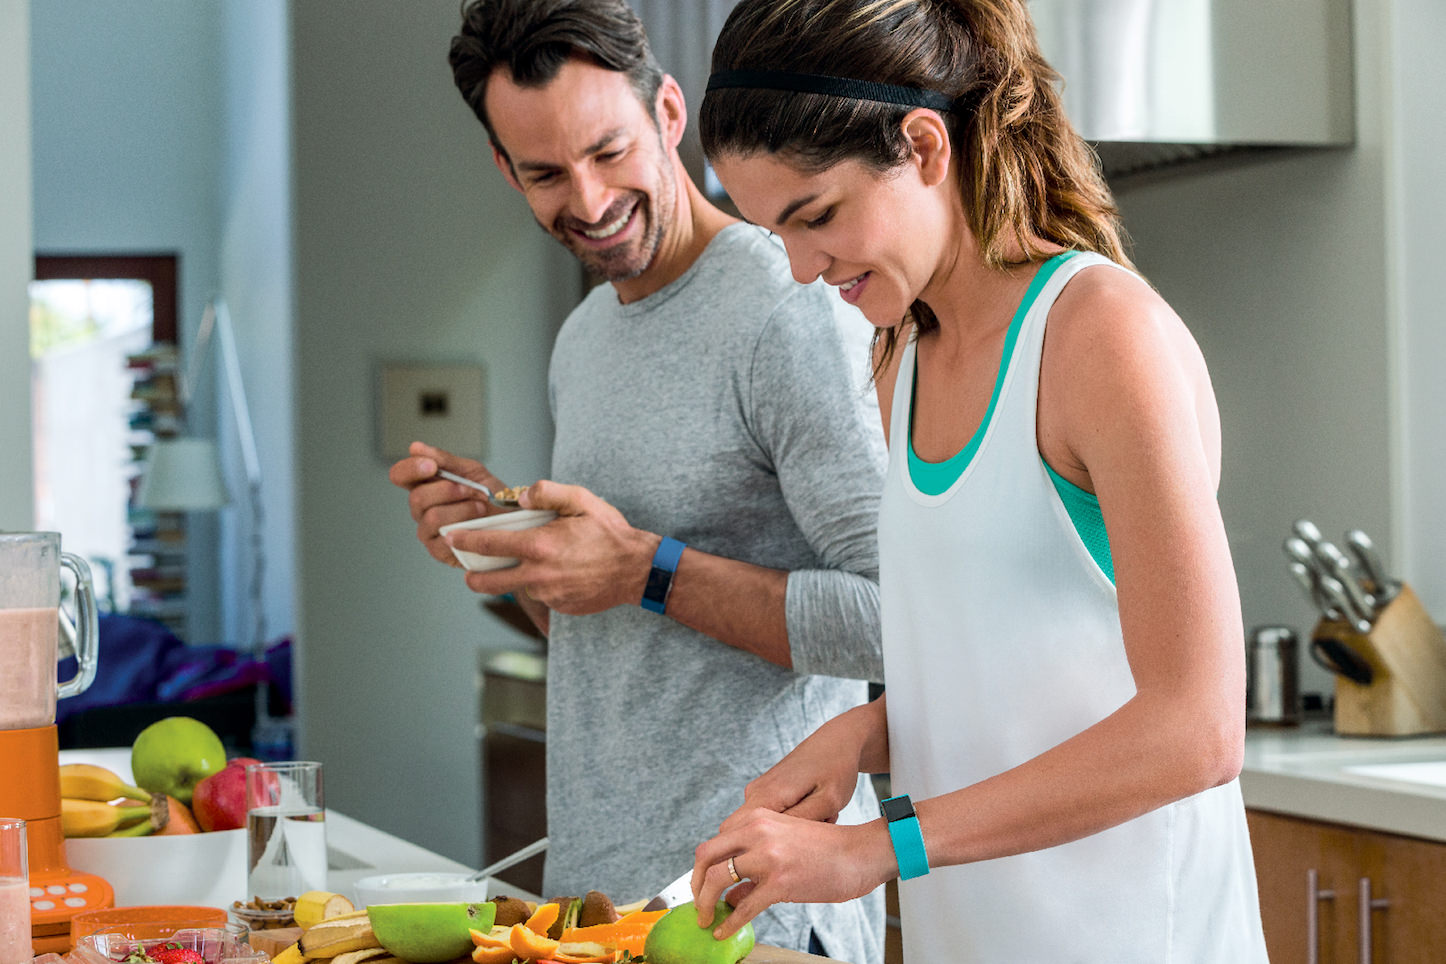 Fitbit-Charge-2_Couple_Kitchen_Lifestyle.jpg